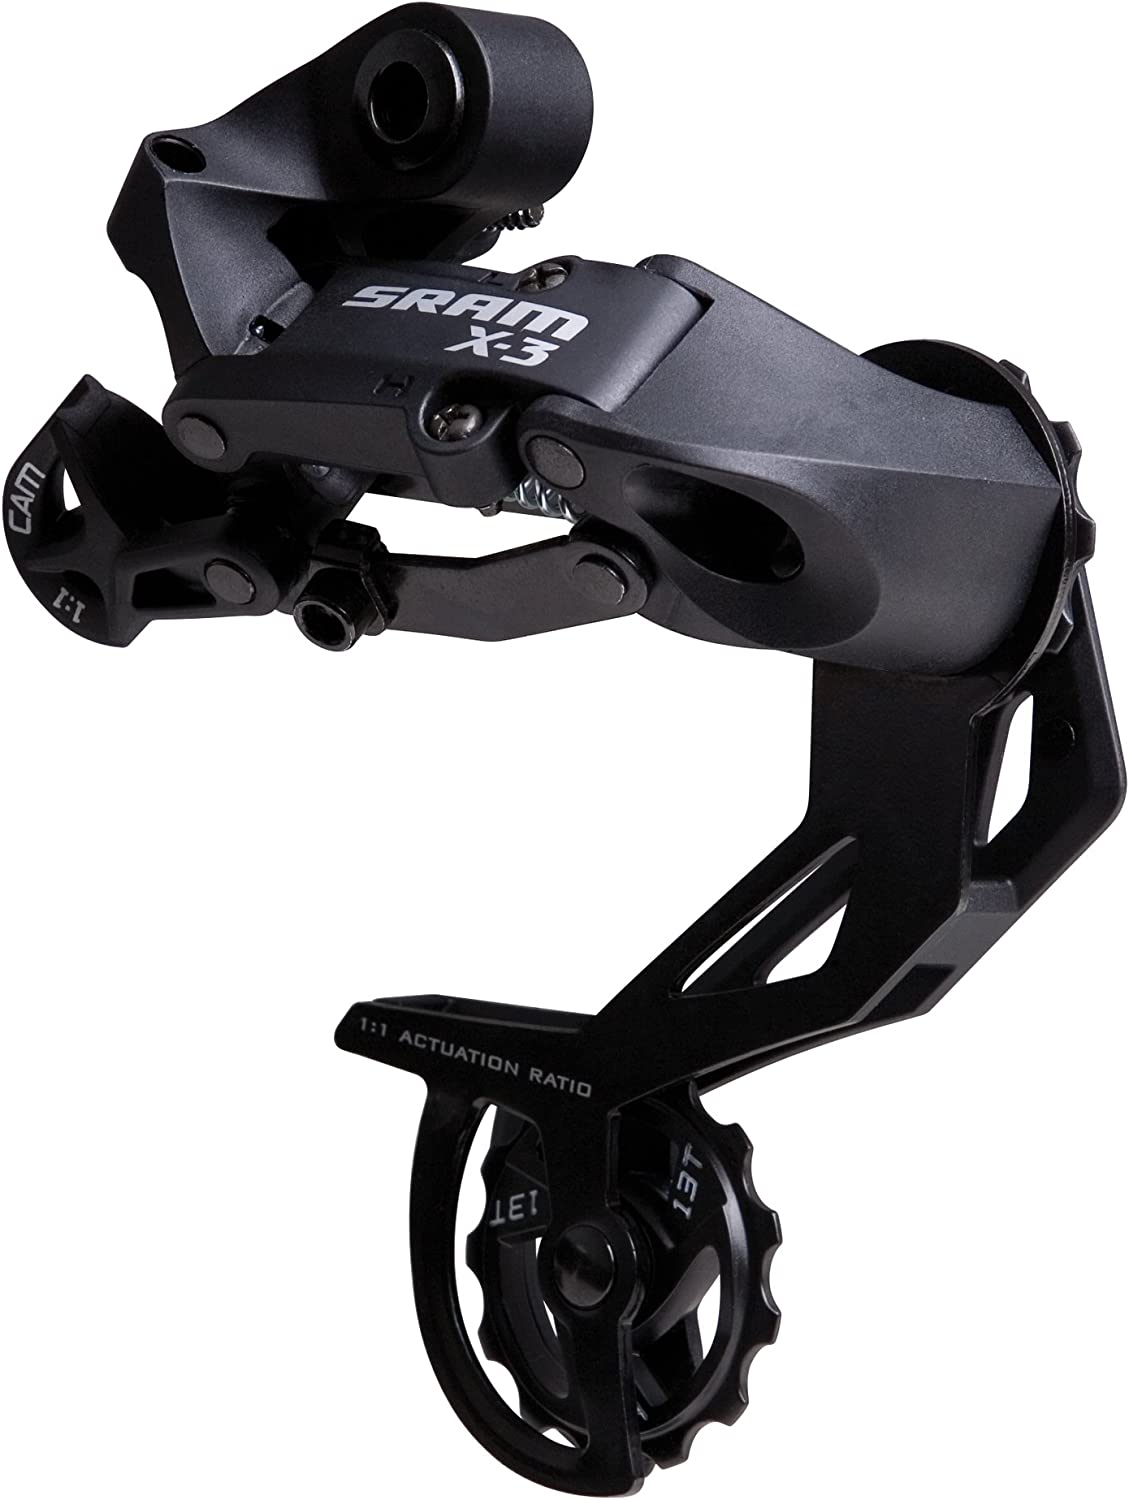 LONG CAGE BLACK 7-8SPD SRAM X3 REAR DERAILLEUR